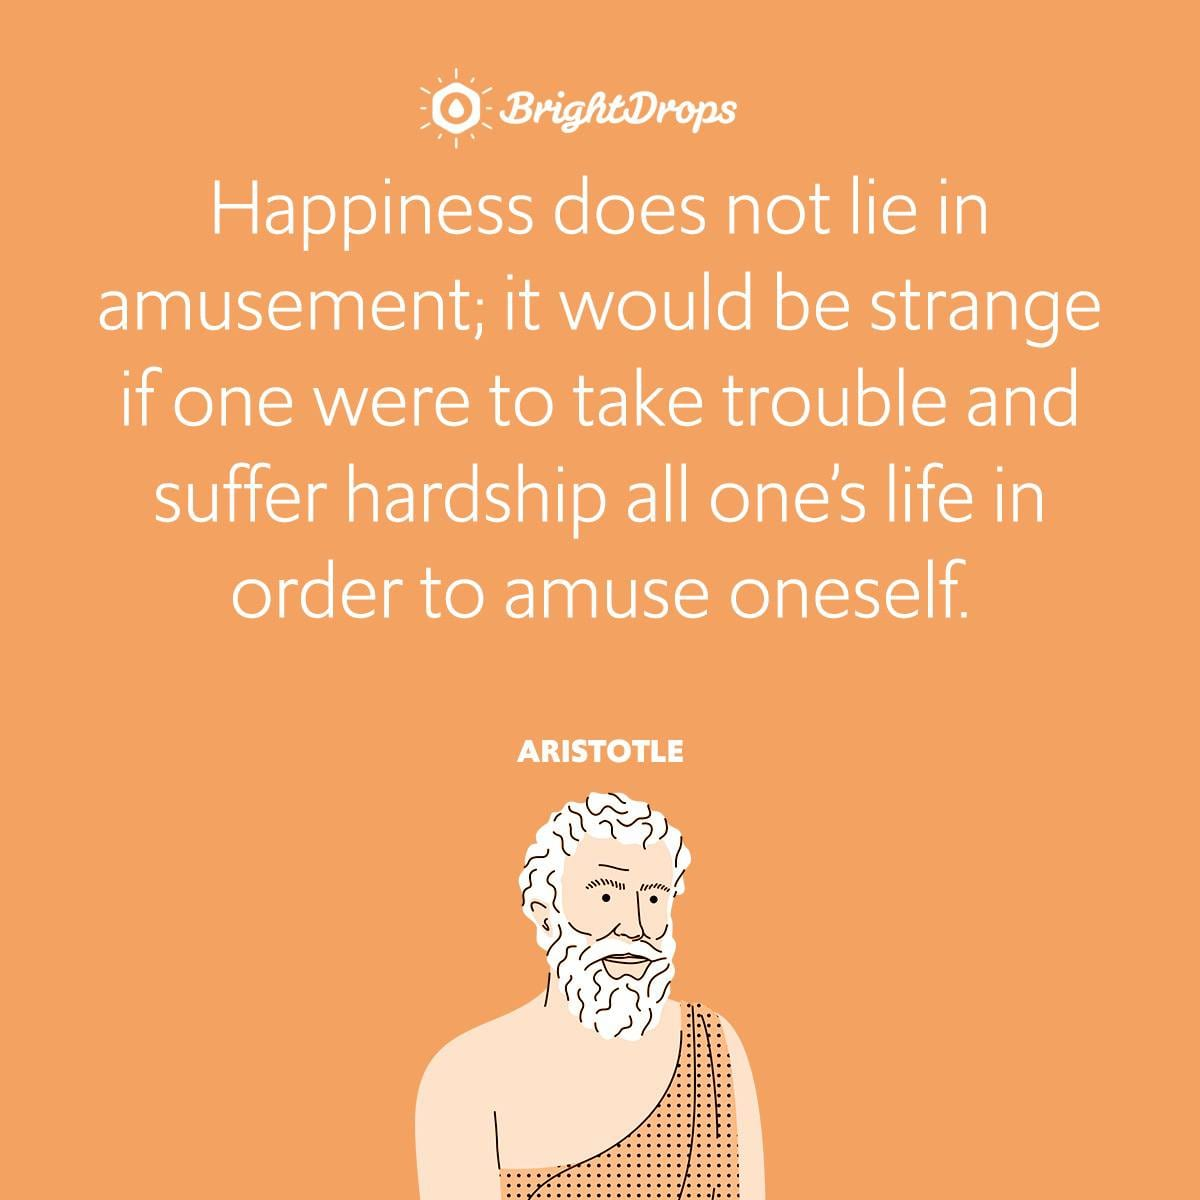 Happiness does not lie in amusement; it would be strange if one were to take trouble and suffer hardship all one's life in order to amuse oneself.